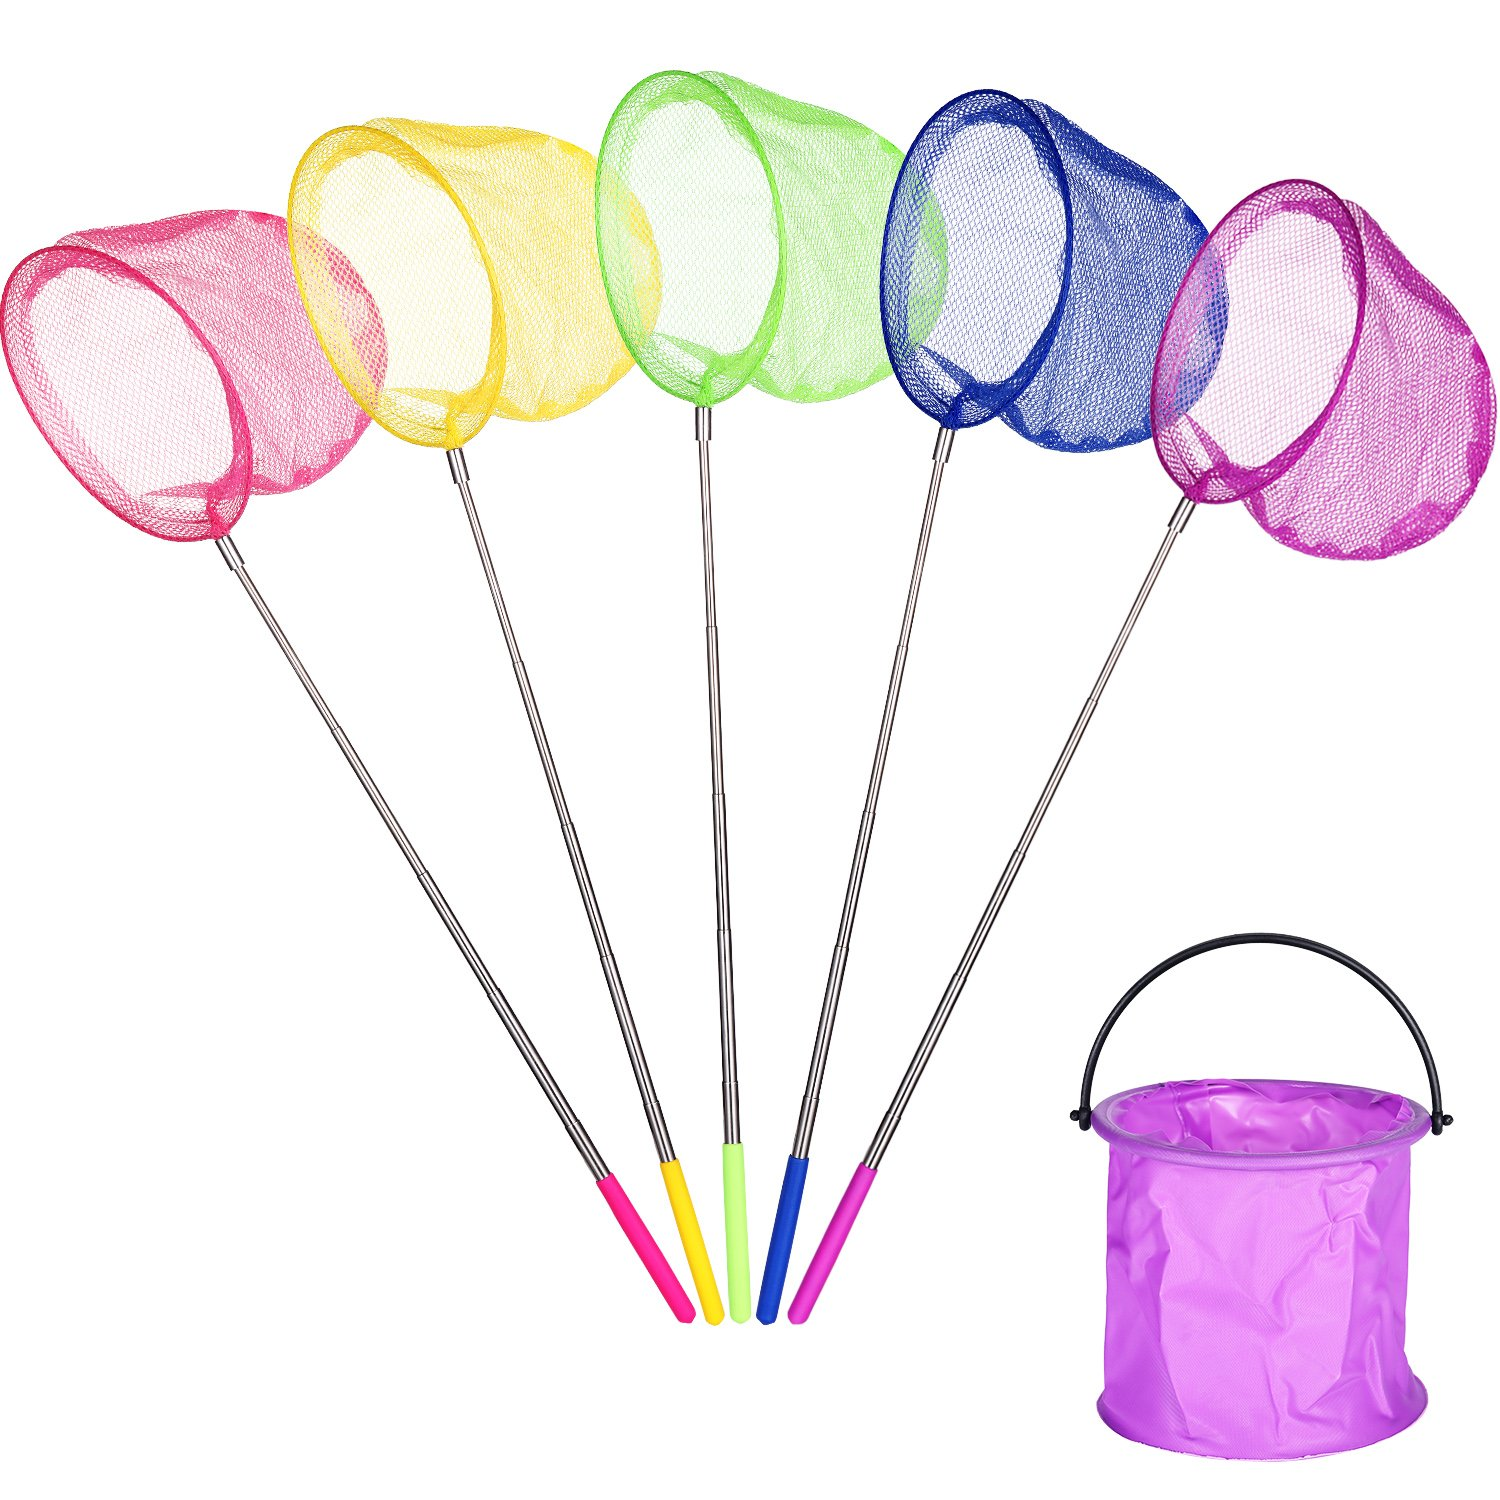 Gejoy 5 Pieces Telescopic Catching Fish Nets 1 Pack Folding Bucket Kids, Multi-Functional Fishing Net Catching Butterfly Fishing Kit Kids, Travel Activities